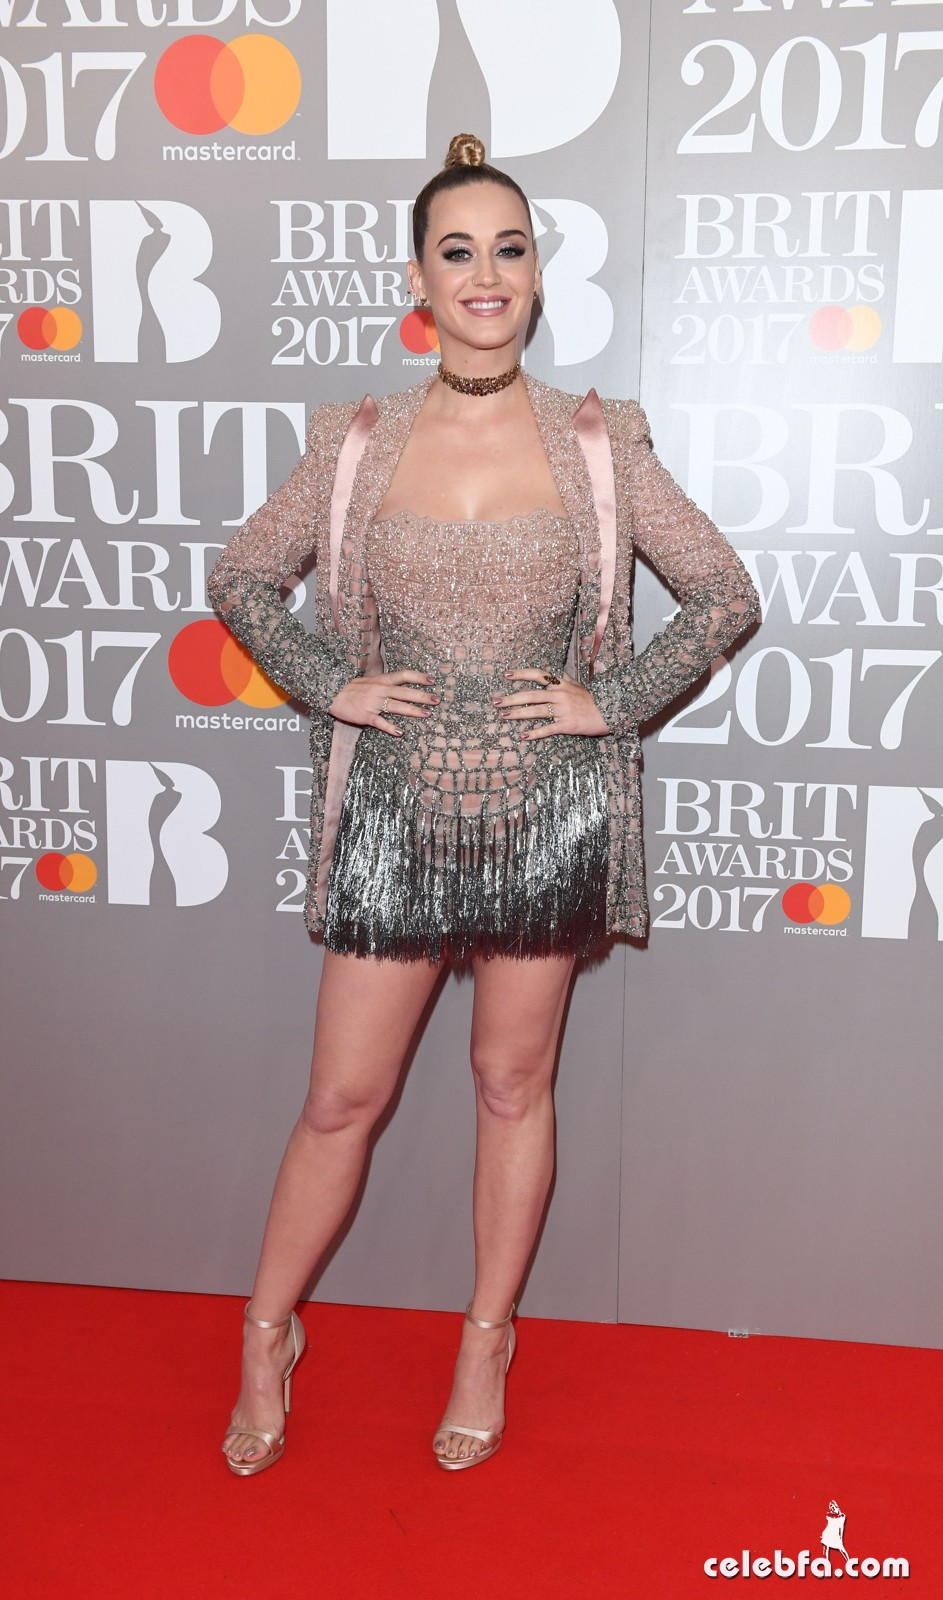 Brit Awards 2017 arrivals held at the 02 Arena in London